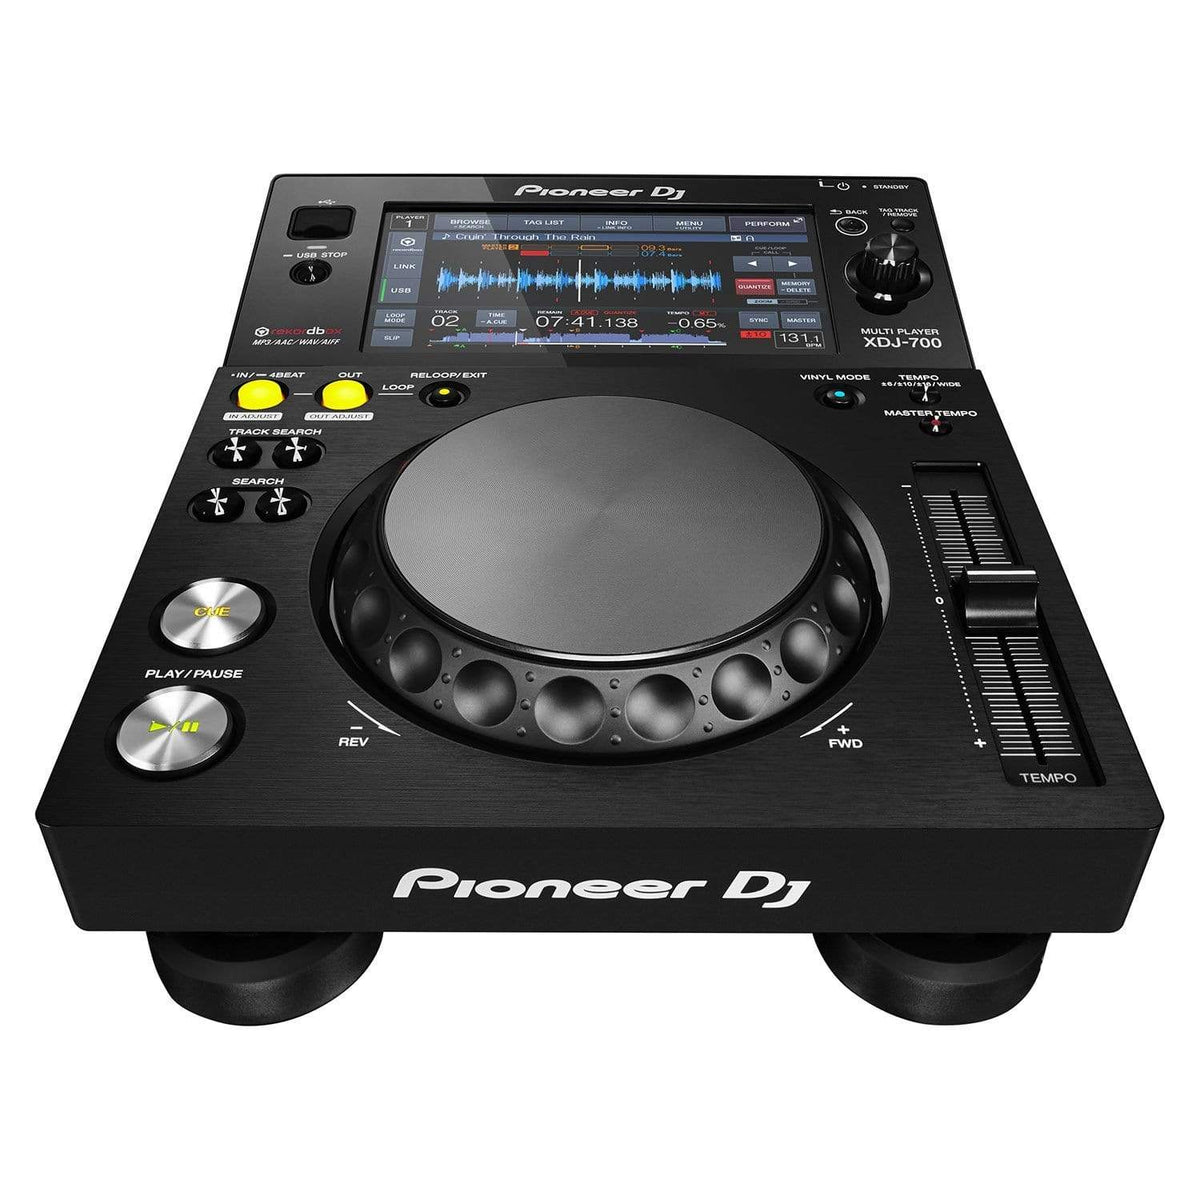 Pioneer DJ XDJ-700 Compact DJ Multi-player